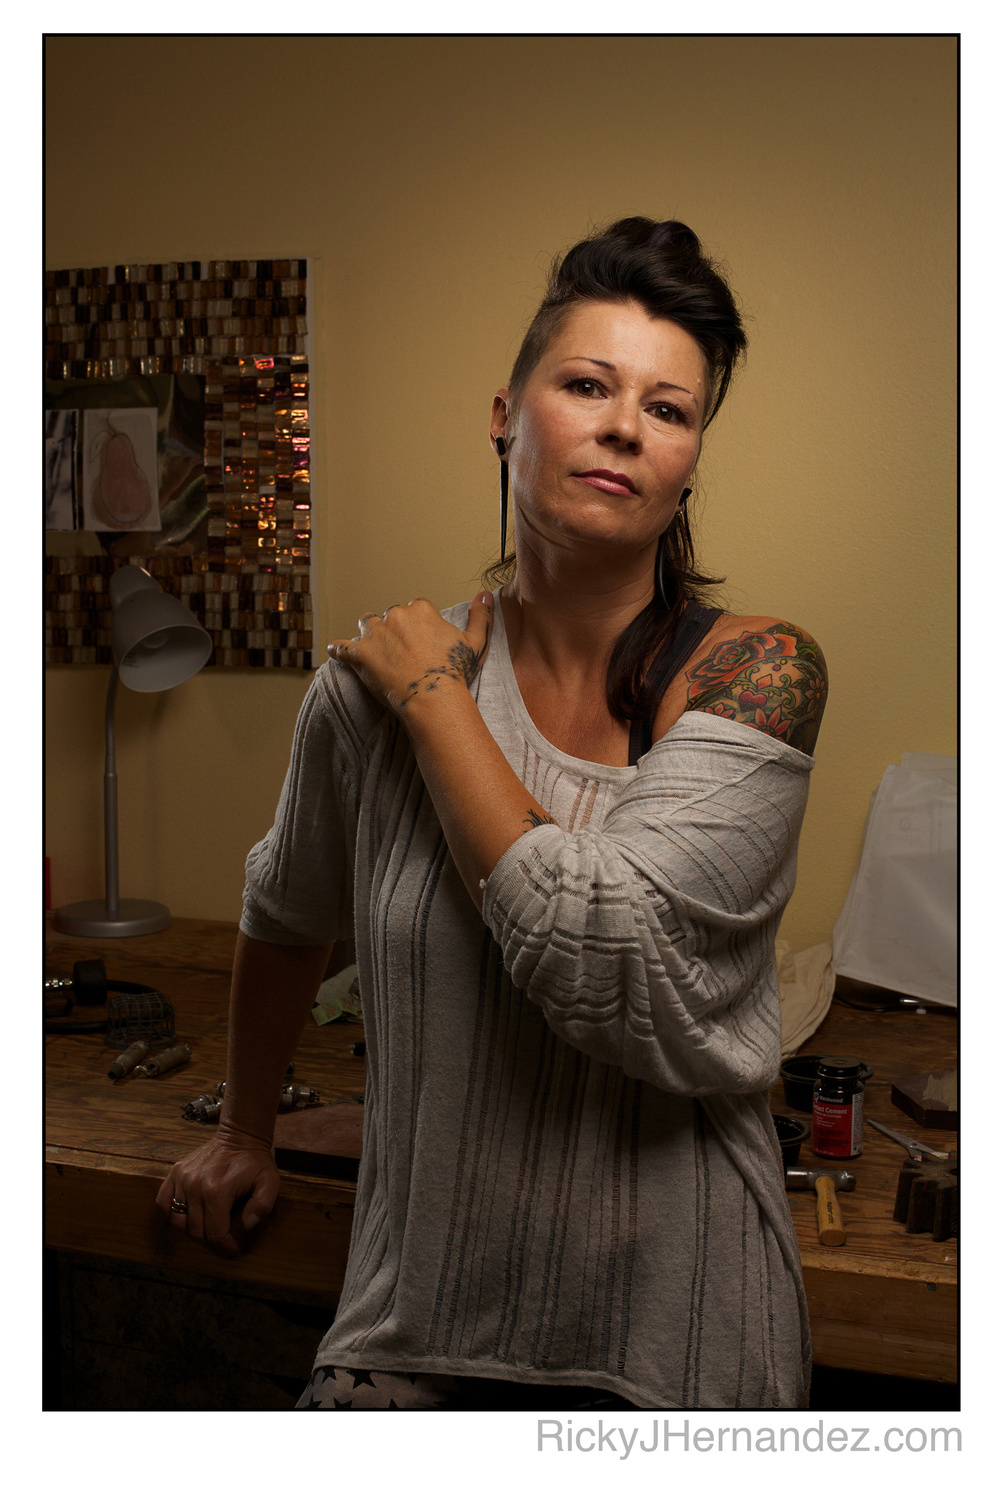 Silke Turner: artist portrait session by Ricky J Hernandez